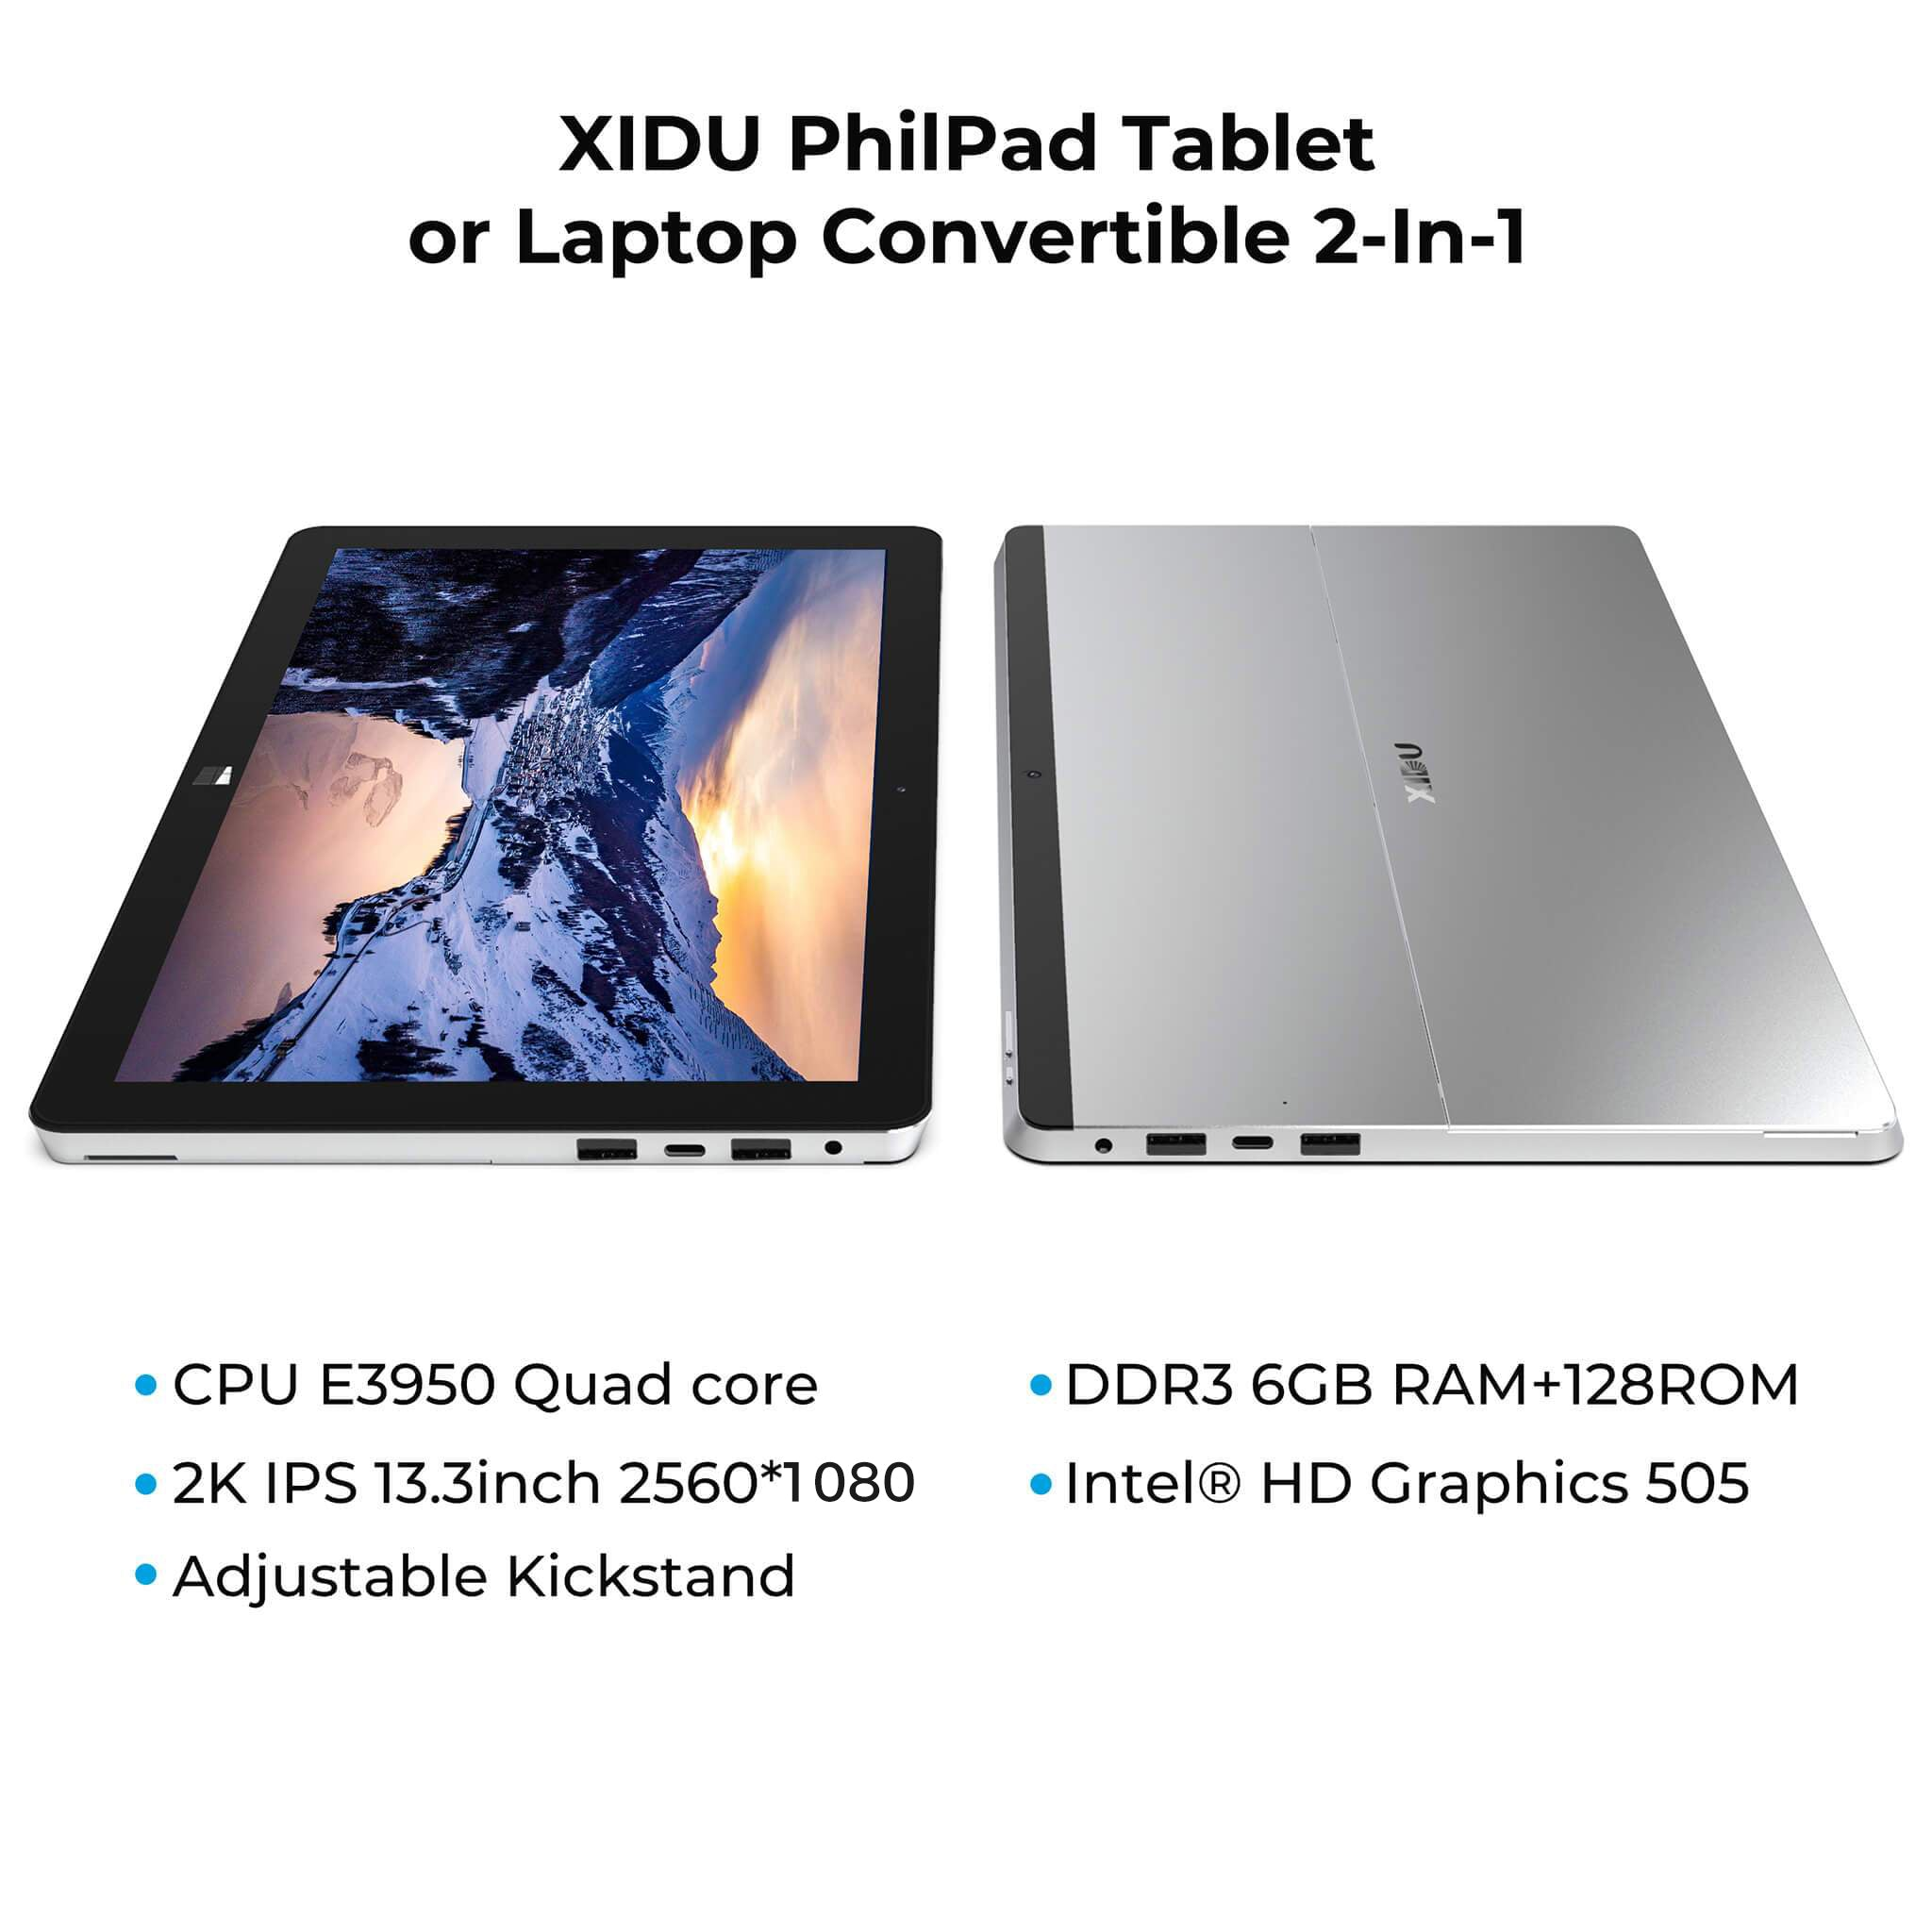 XIDU PhilPad  2-in-1 Touchscreen Laptop